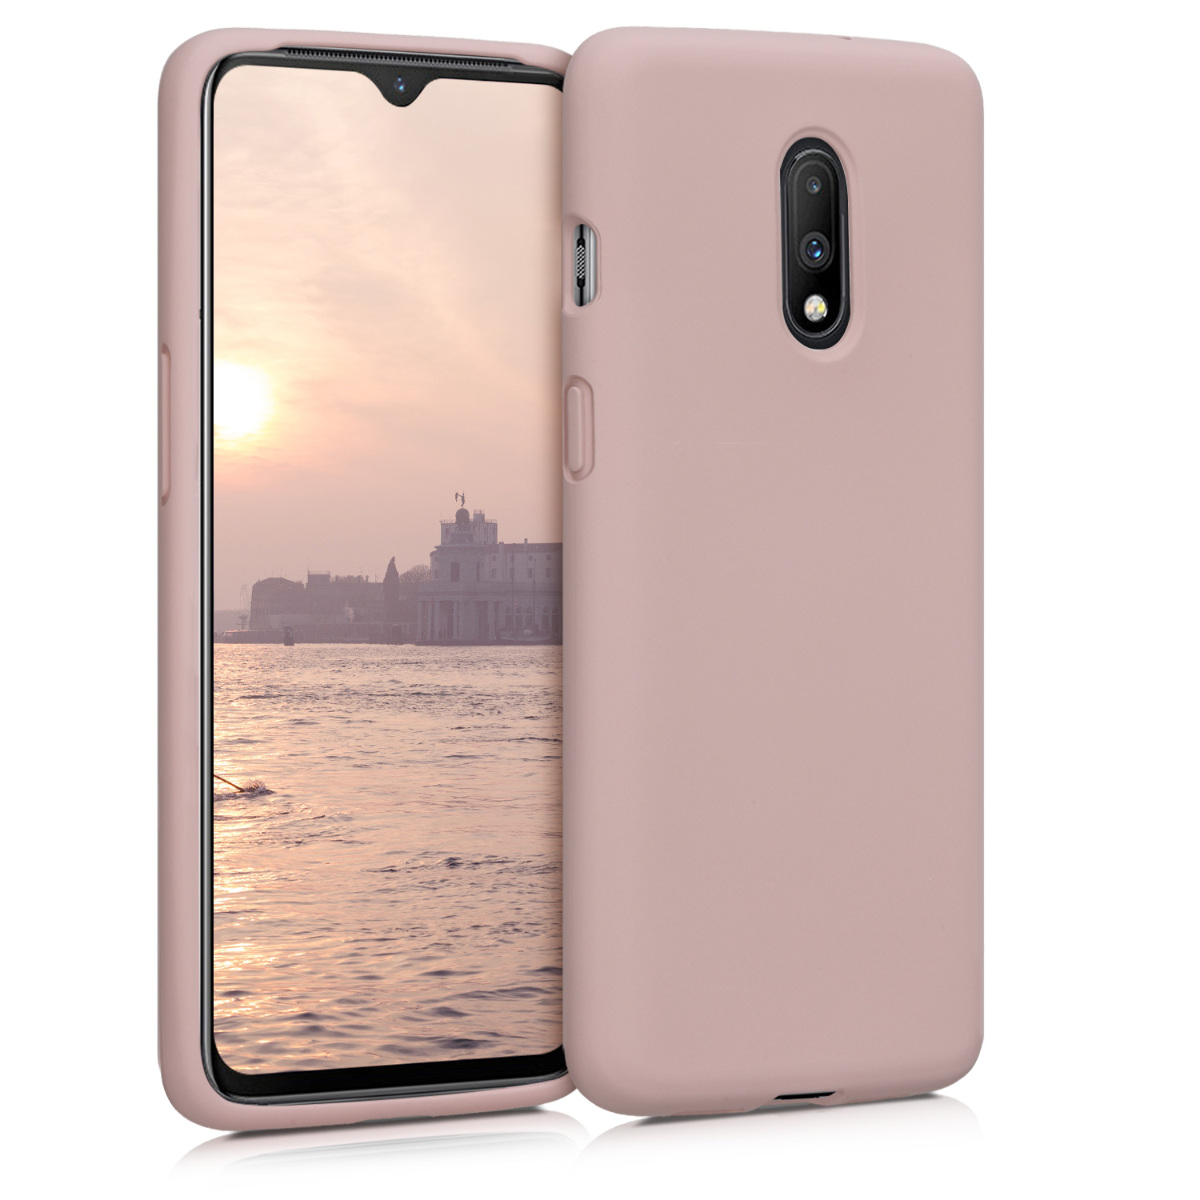 KW Θήκη Σιλικόνης OnePlus 7 - Soft Flexible Rubber Protective Cover - Dusty Pink (47040.10)